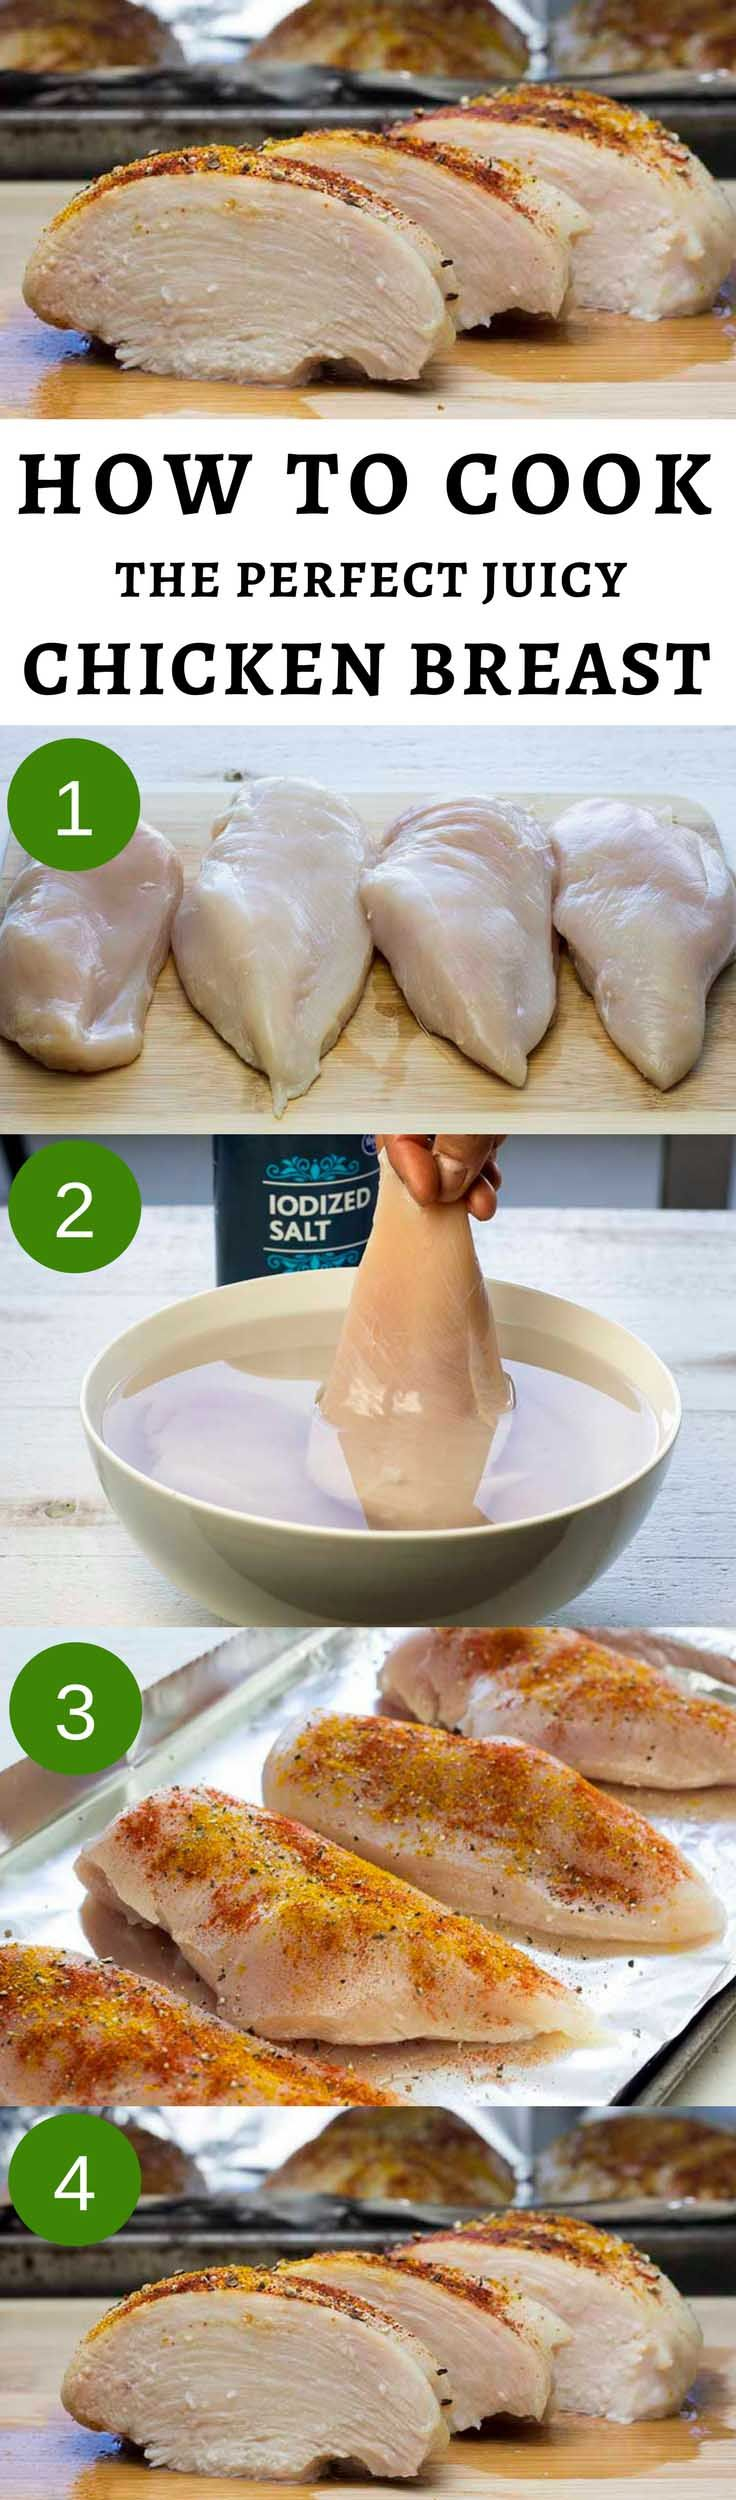 Follow this easy guide to bake the perfect chicken breast in the oven. You will always get a perfectly tender, juicy, and yummy result. #bakedchicken #brining #howtobakechicken #chickenbreast